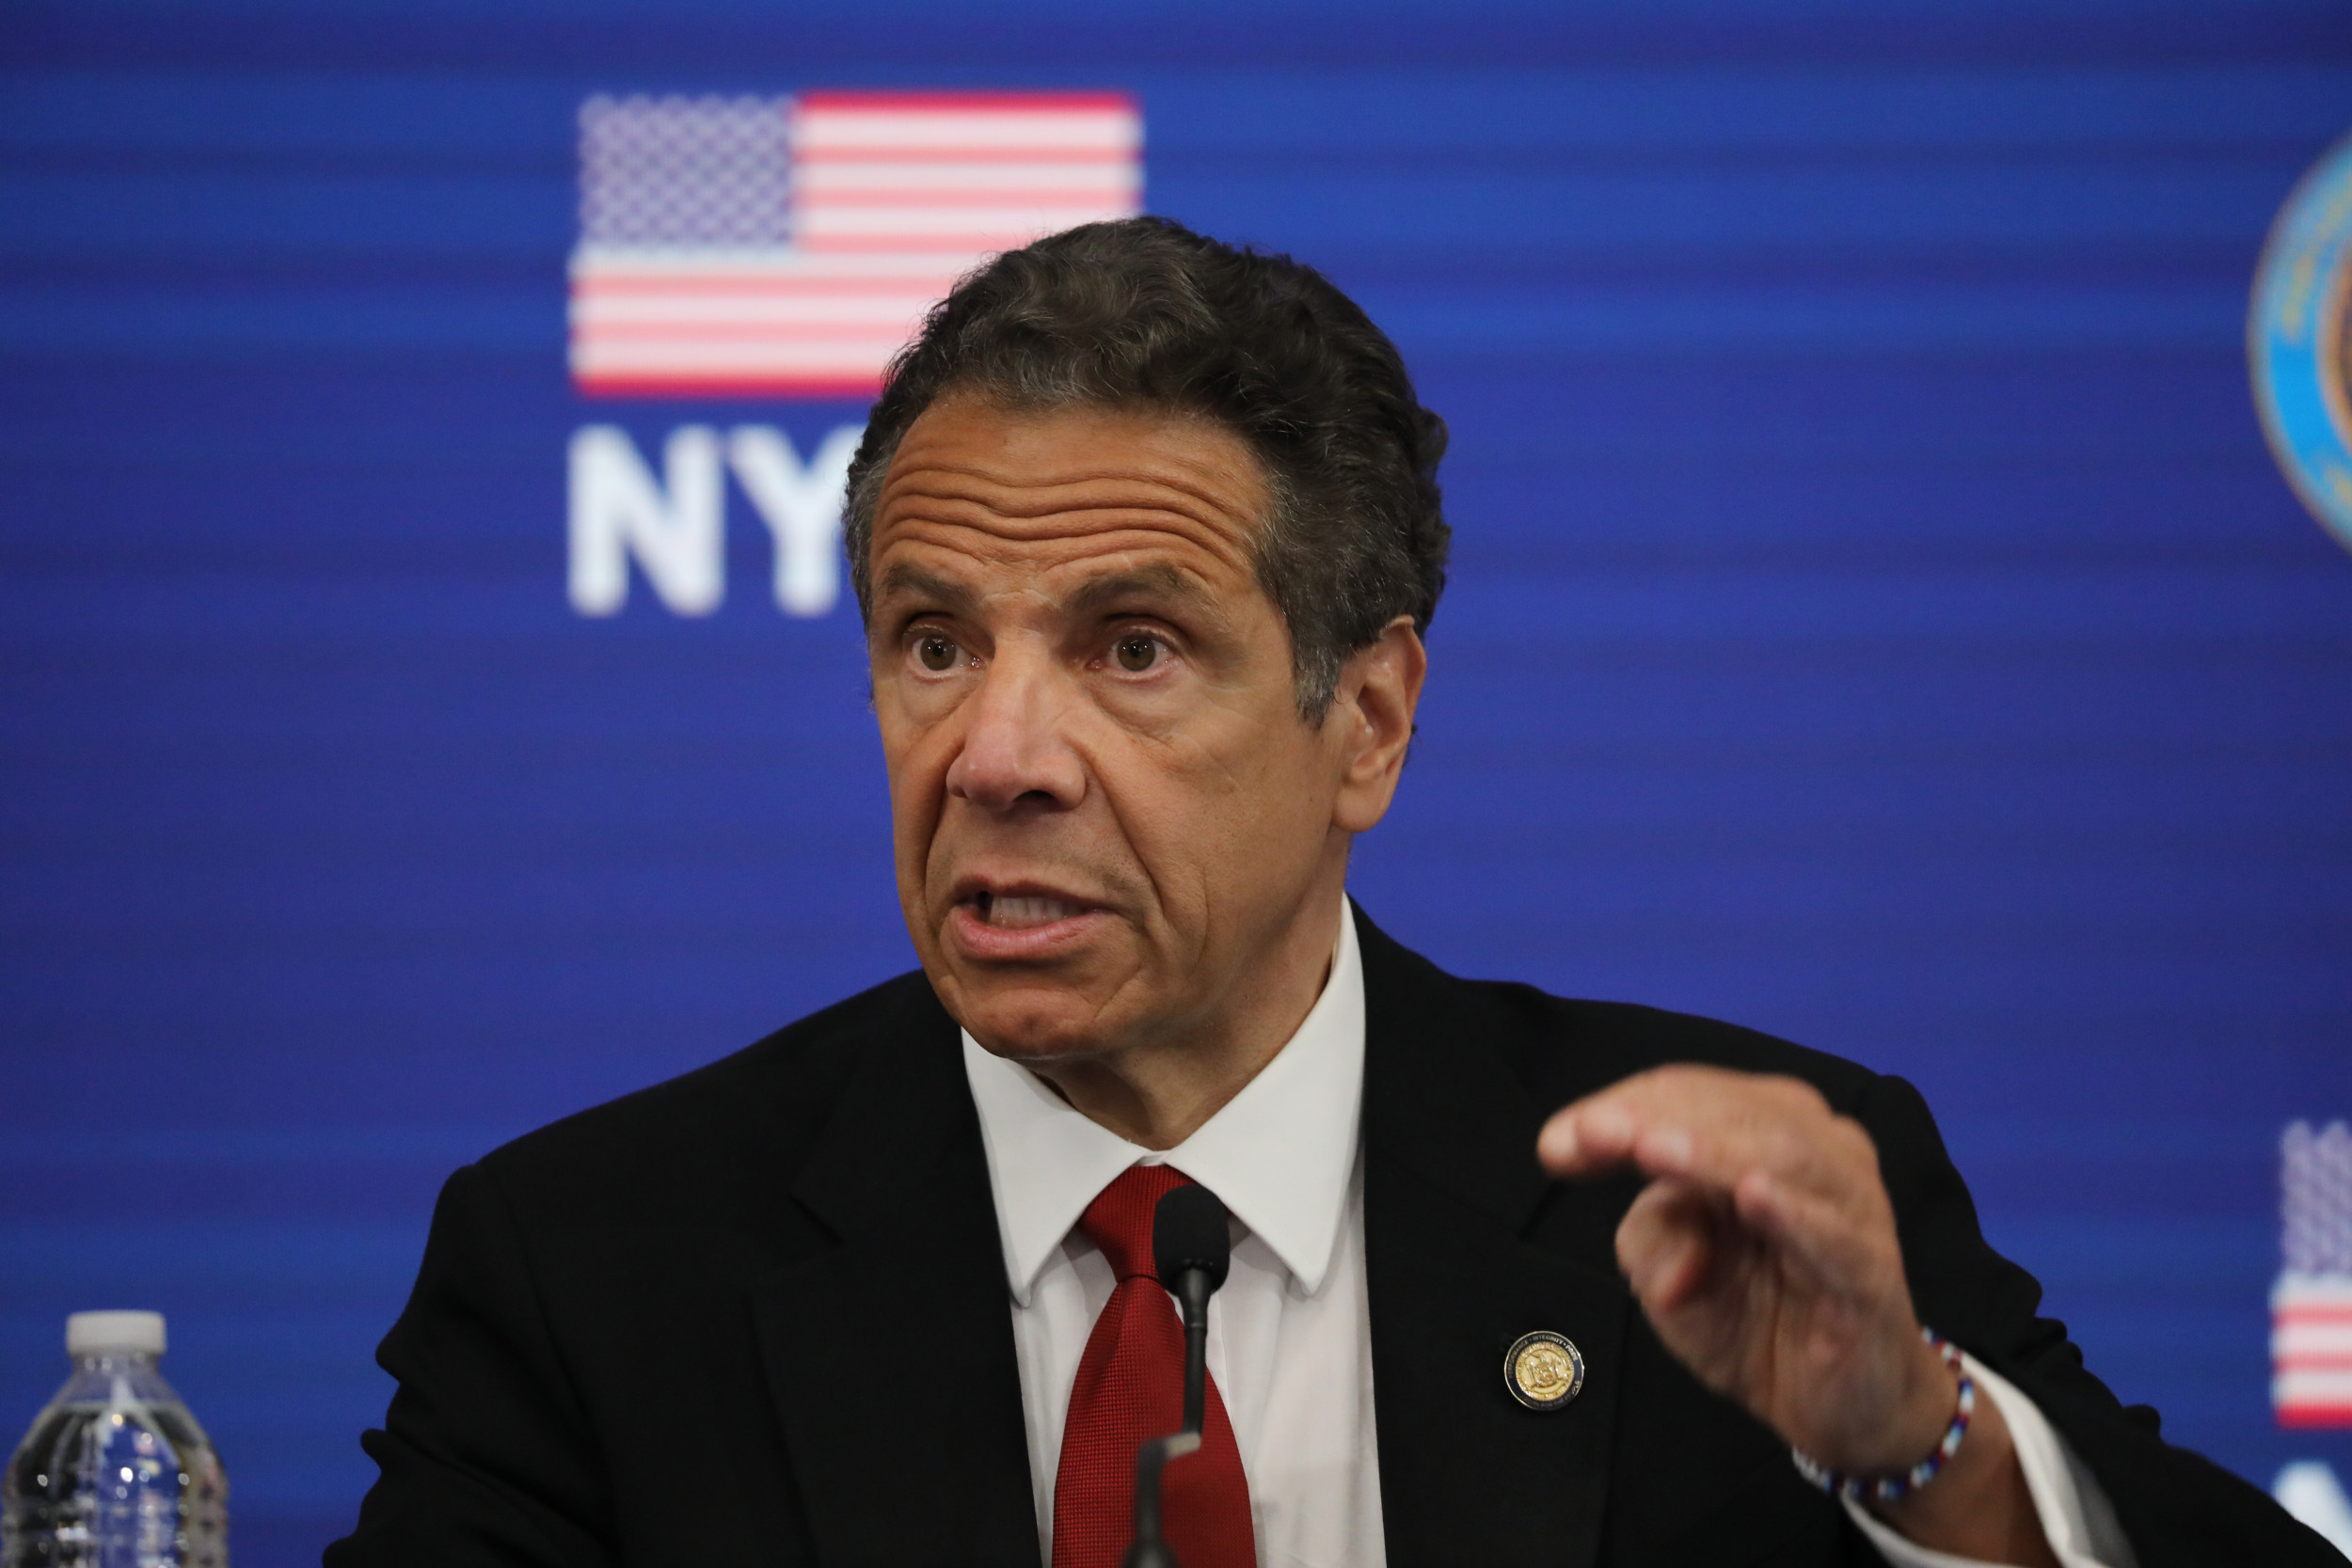 Ny Governor Cuomo S Approval Rating Drops As Voters Disapprove Of His Handling Of Nursing Homes Poll The Daily Cable